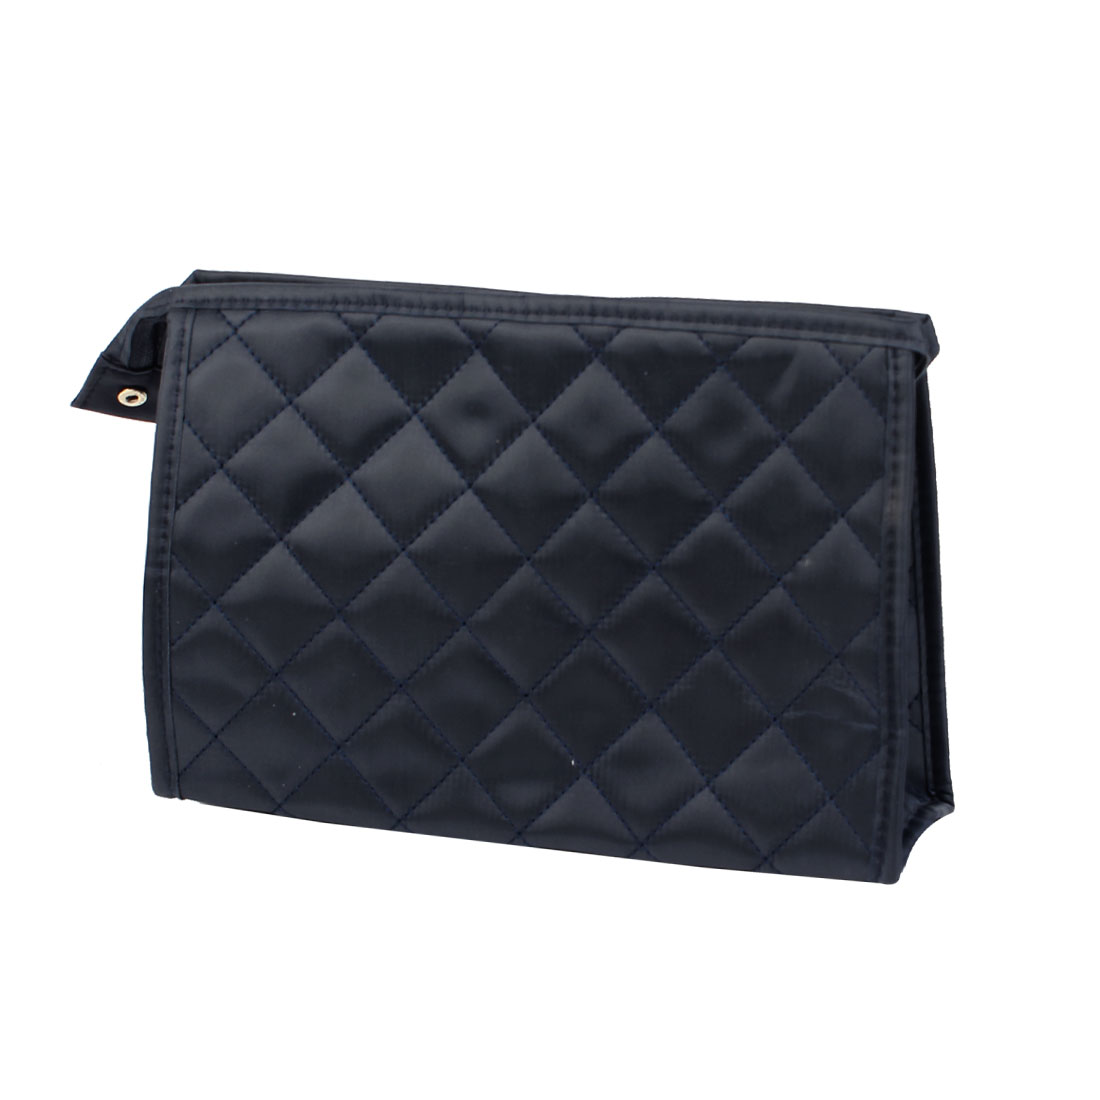 Navy Blue Grids Design Zip Up Make Up Cosmetic Bag Organizer Pouch for Women